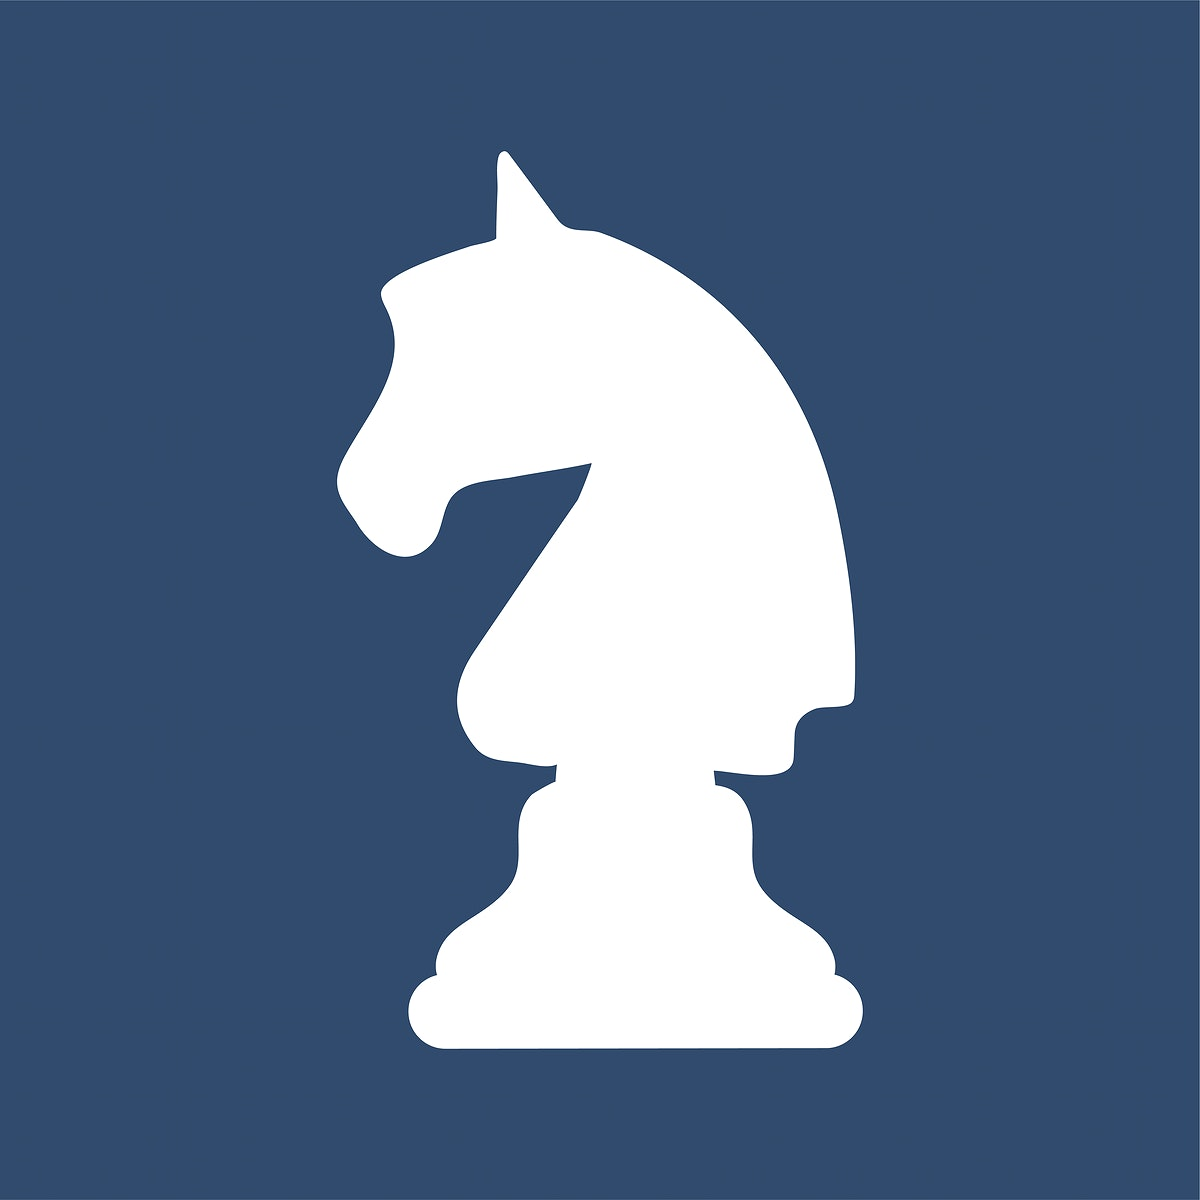 Knight horse chess piece icon